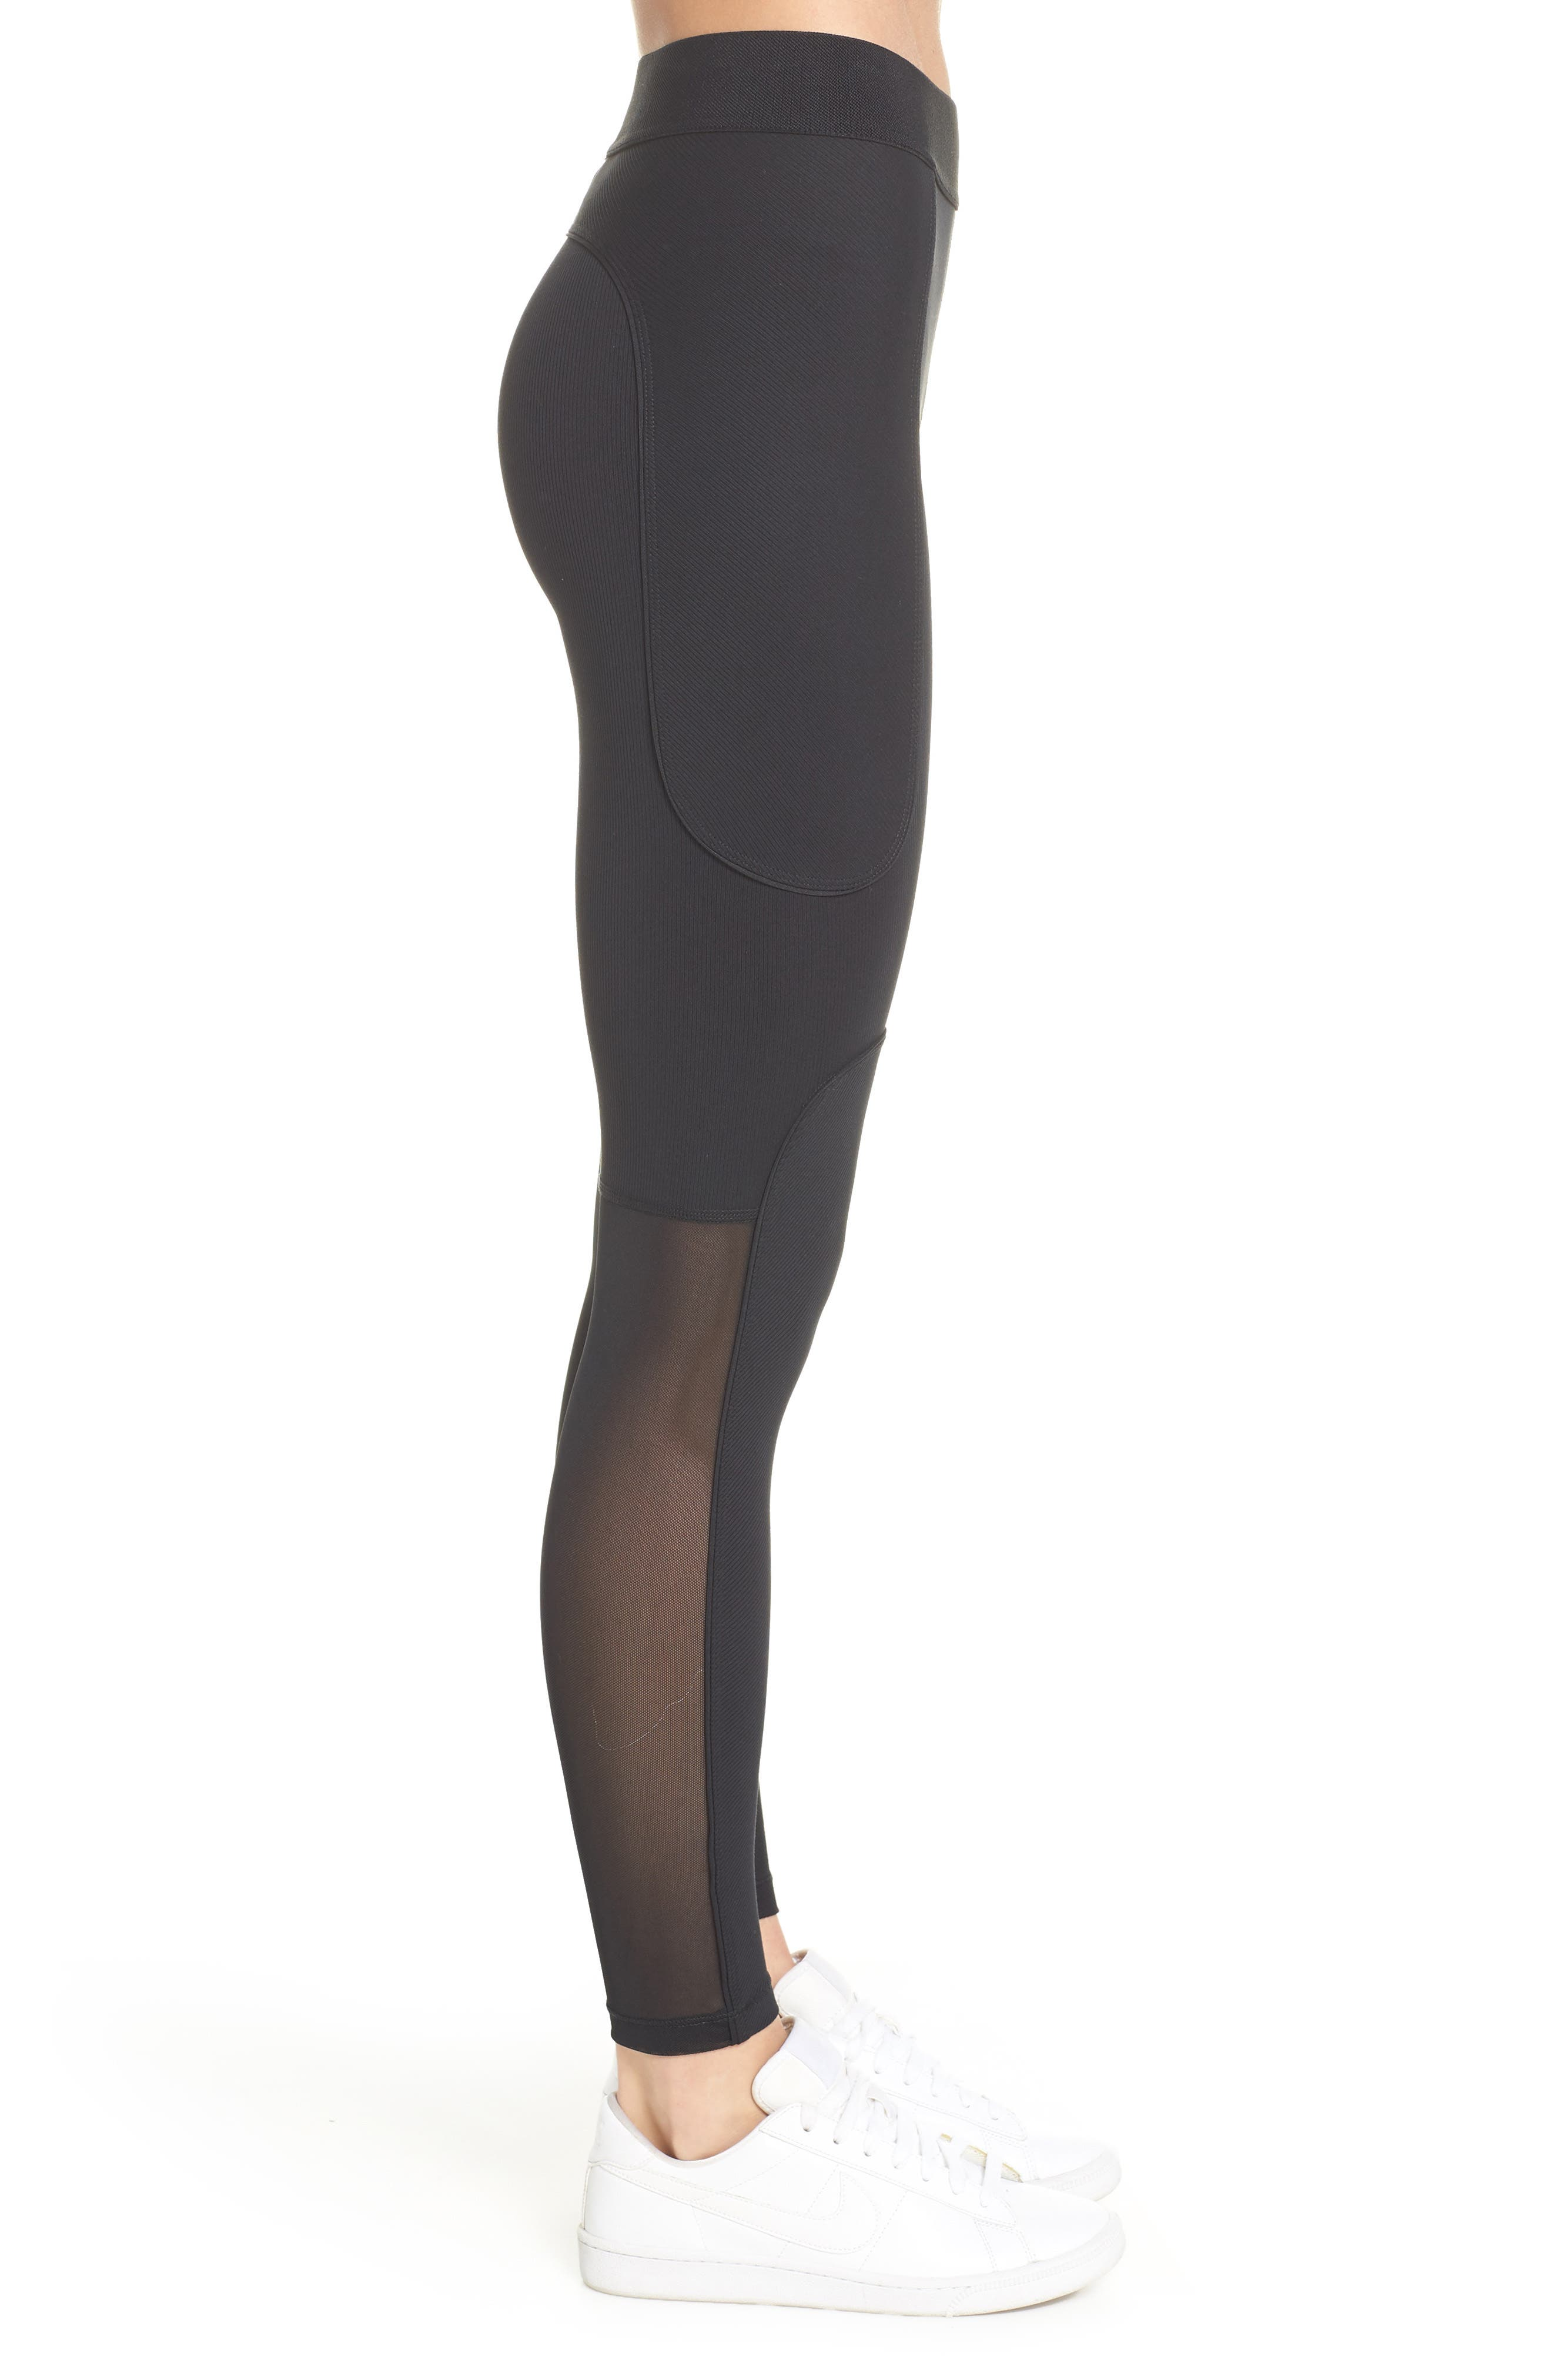 The Nike Pro HyperCool Women's Ribbed Tights,                             Alternate thumbnail 3, color,                             BLACK/ CLEAR